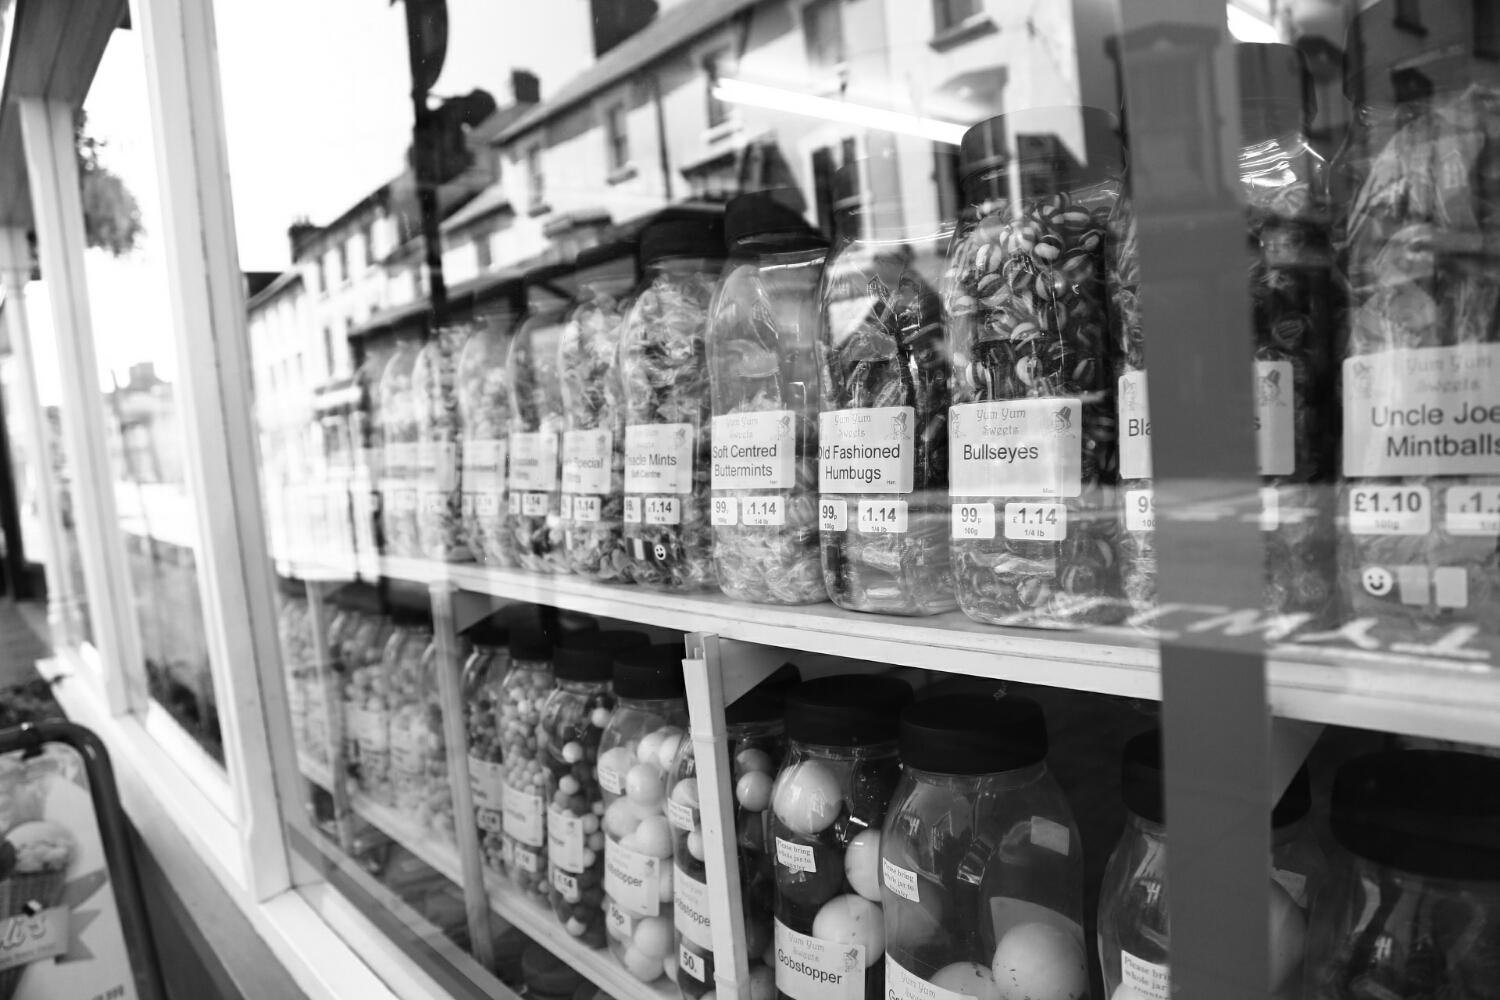 sweets from the 1960s (Canon 6D)